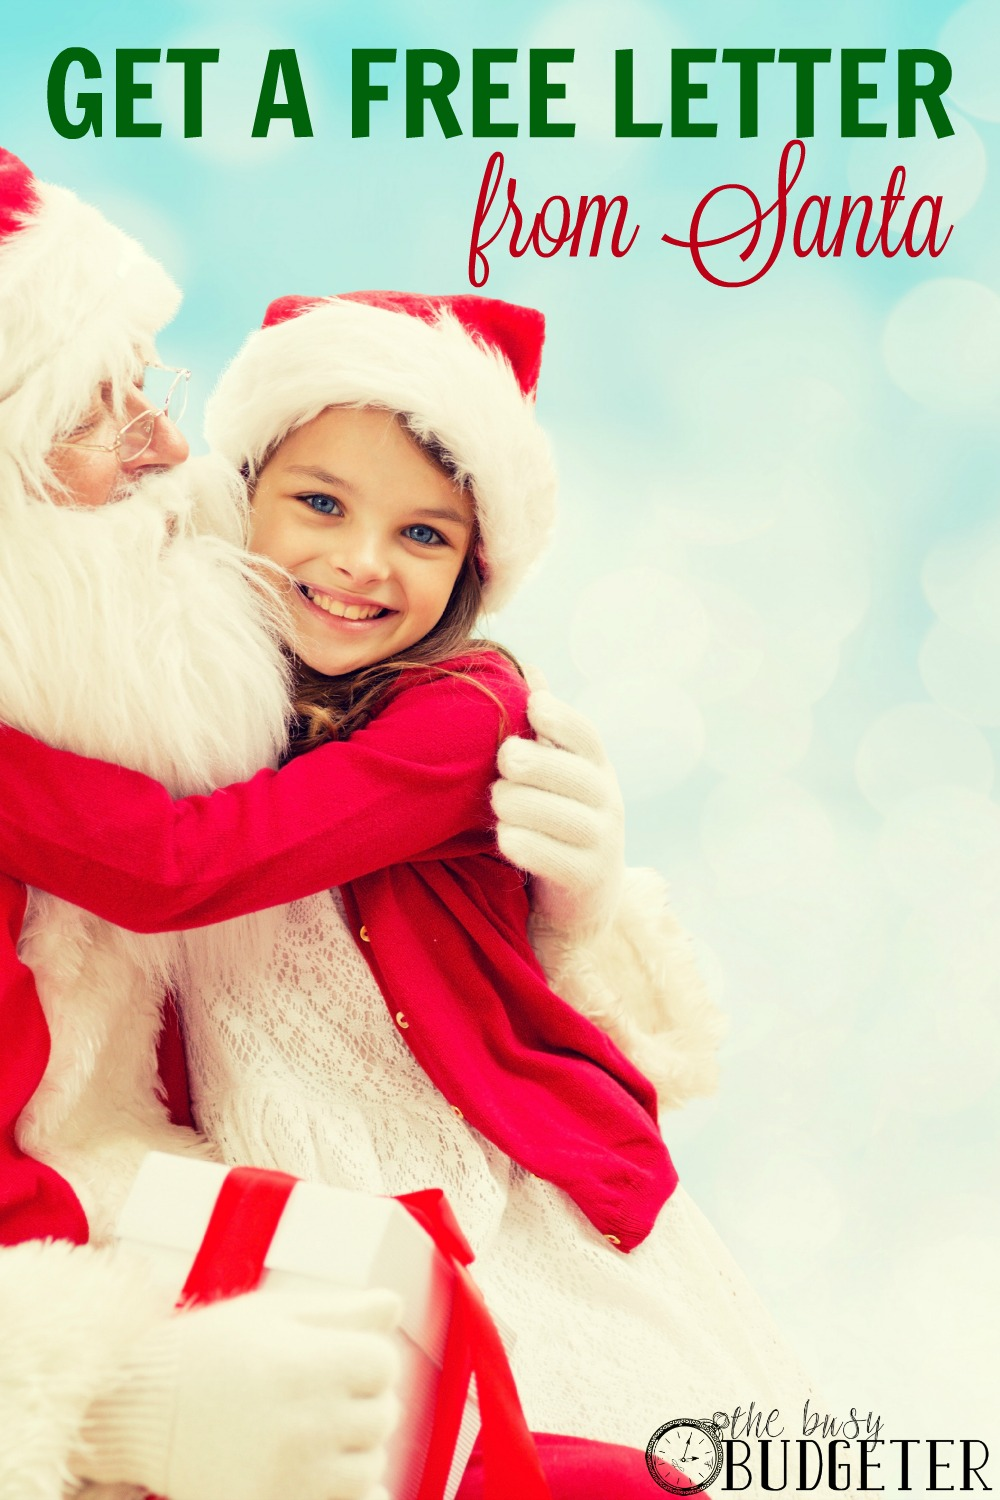 Get a free letter from santa! What a sweet idea! My little guy would love this.